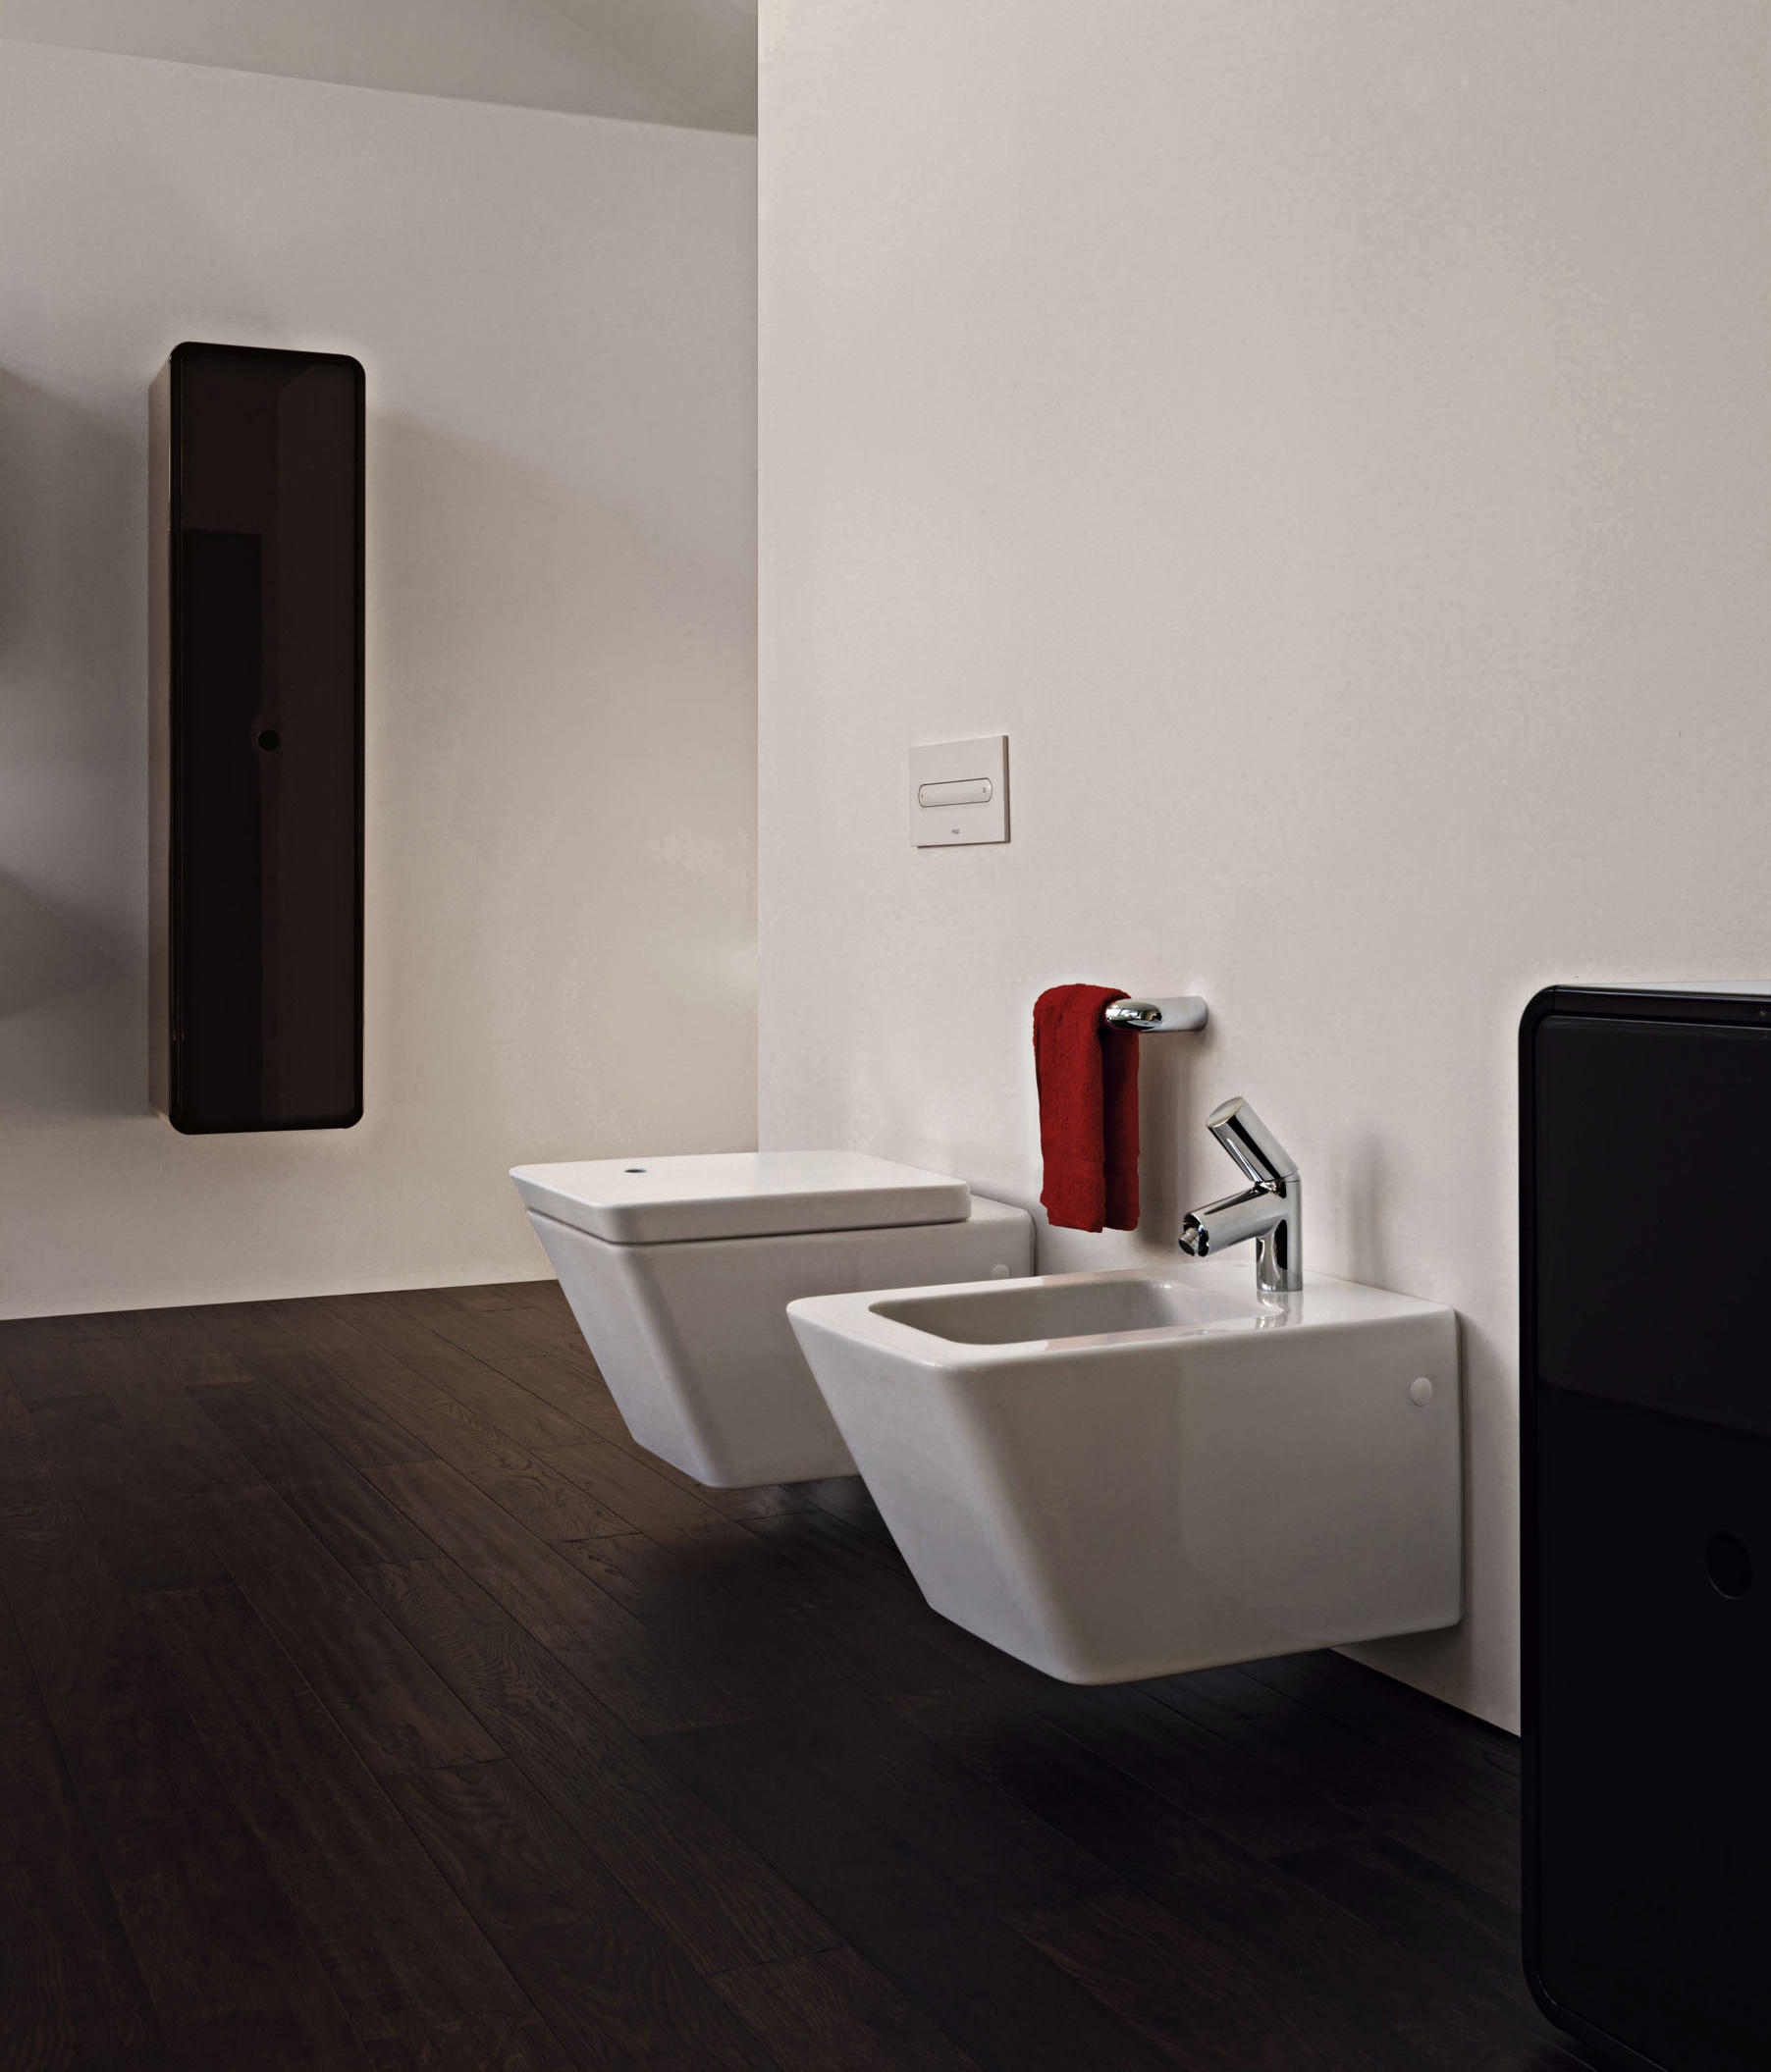 ilbagnoalessi dot wc sitz mit deckel von laufen architonic. Black Bedroom Furniture Sets. Home Design Ideas